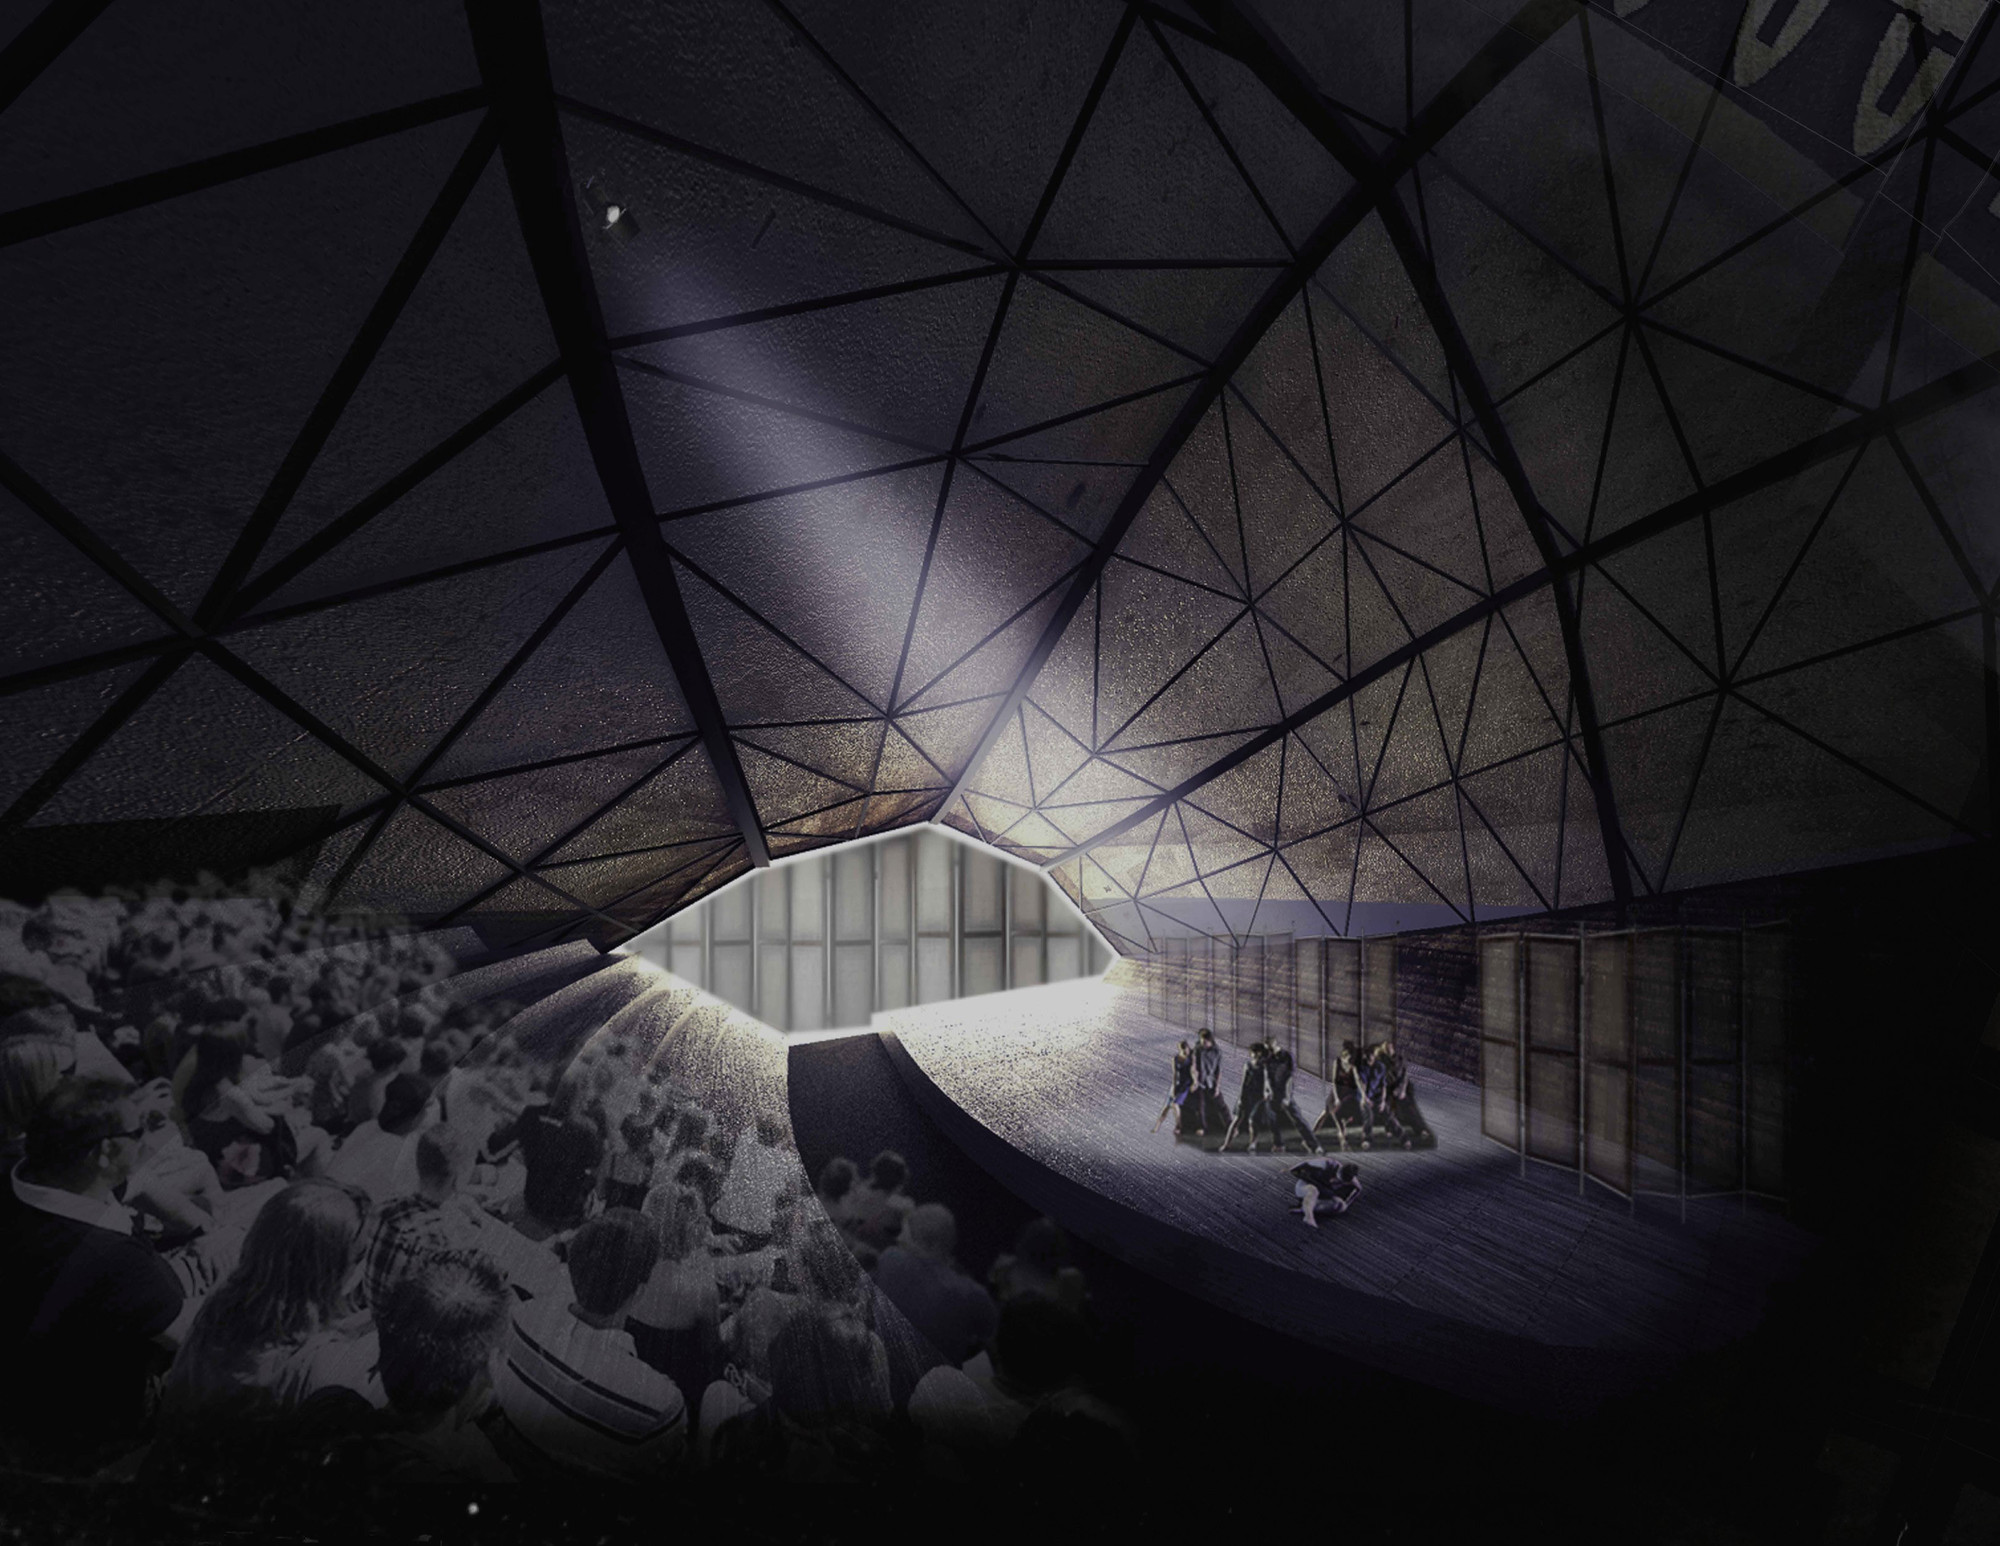 6 Winners Selected for OISTAT Competition to Design a Floating Theatre in Germany, Improvisational Theatre / Žilvinas Stasiulevičius. Image Courtesy of OISTAT